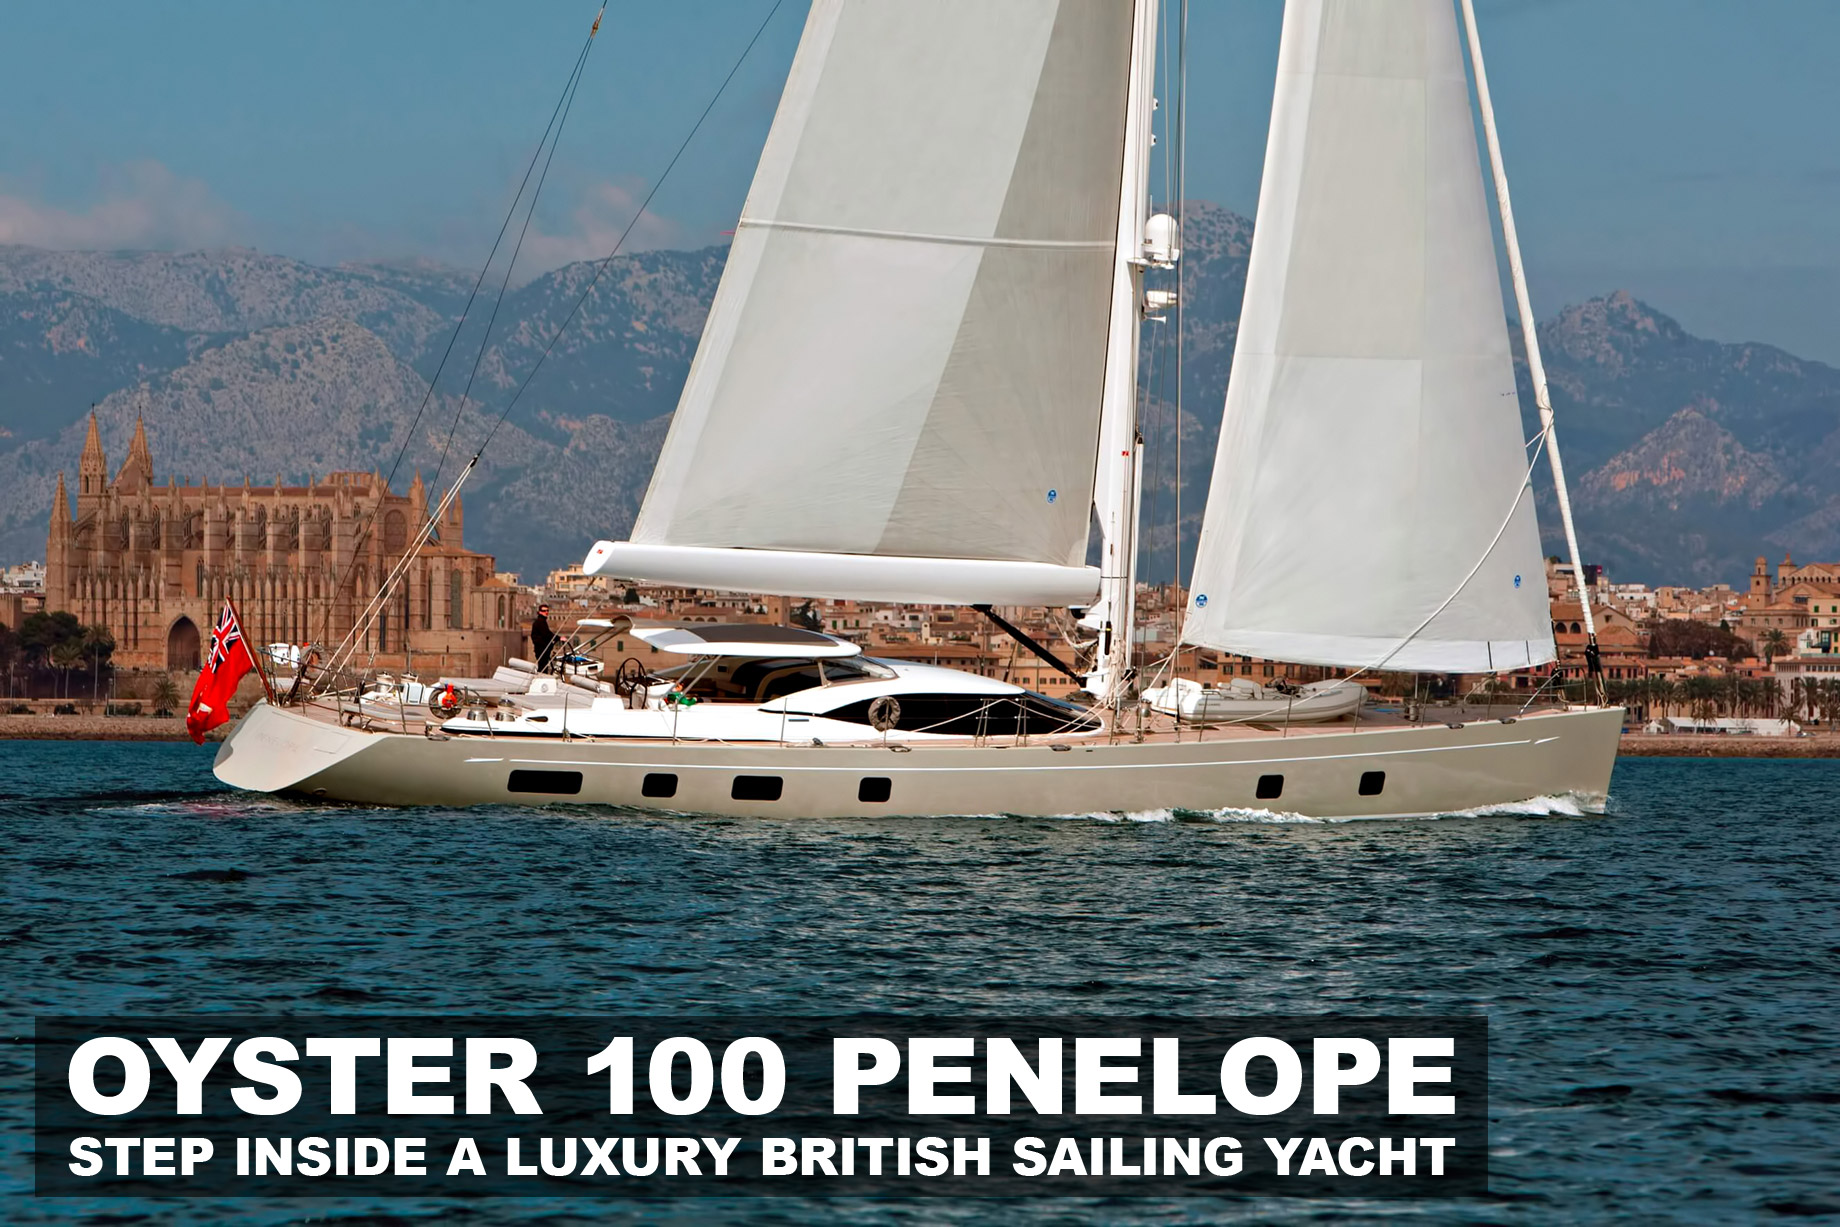 Oyster 100 Penelope - Step Inside A Luxury British Sailing Yacht